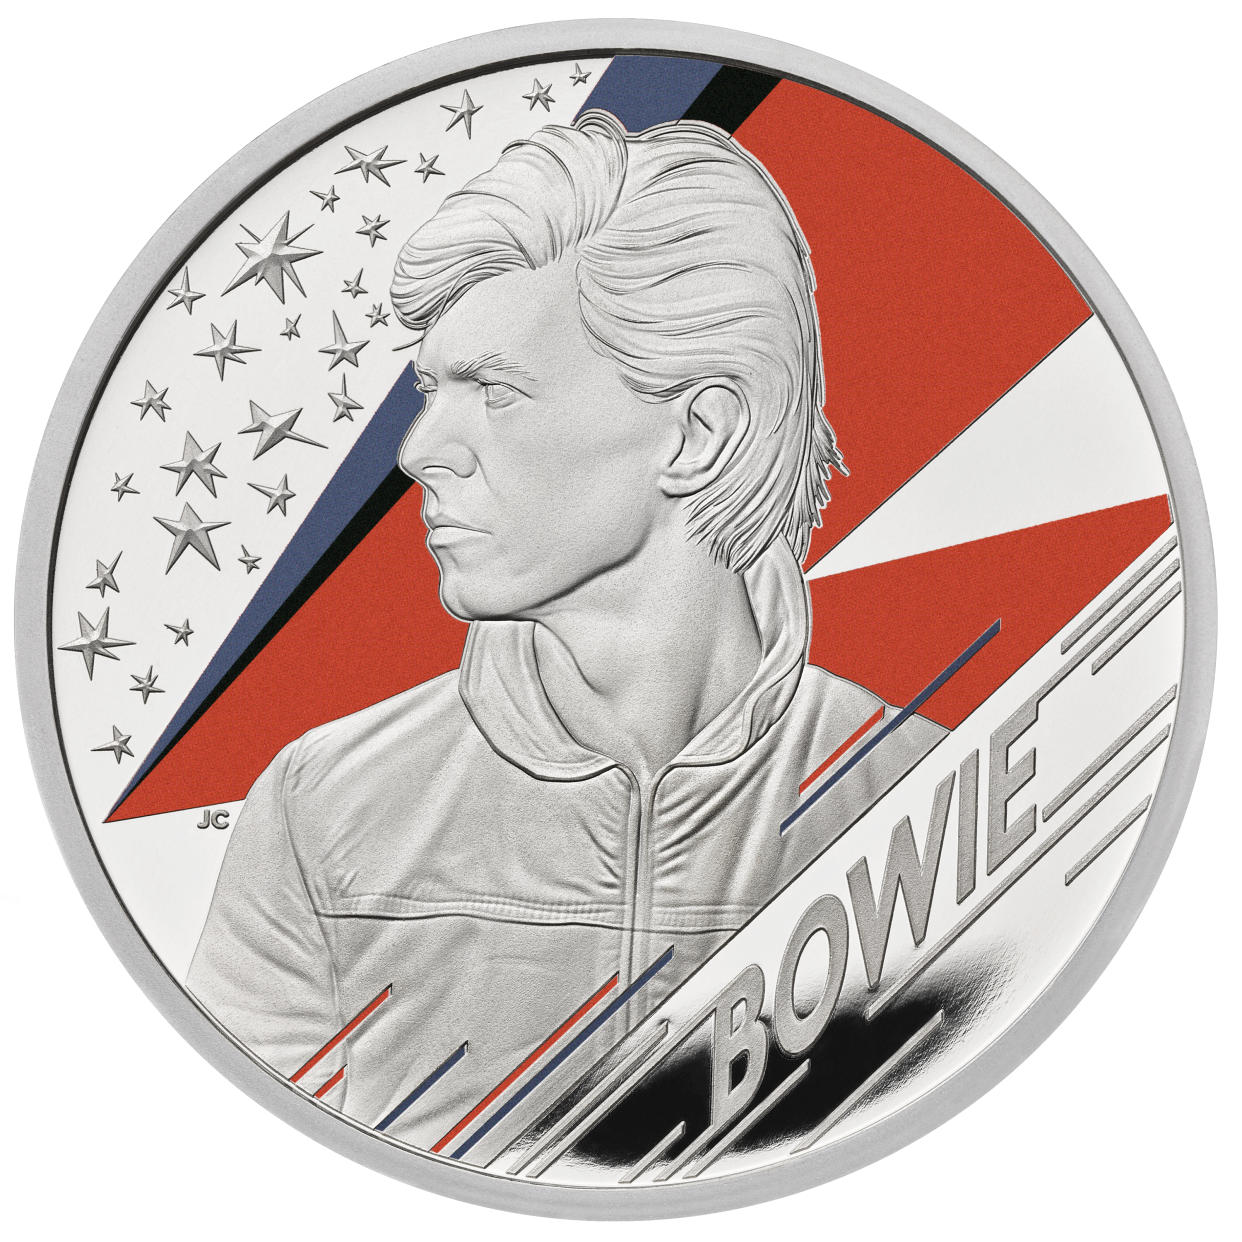 David Bowie one ounce silver proof coin